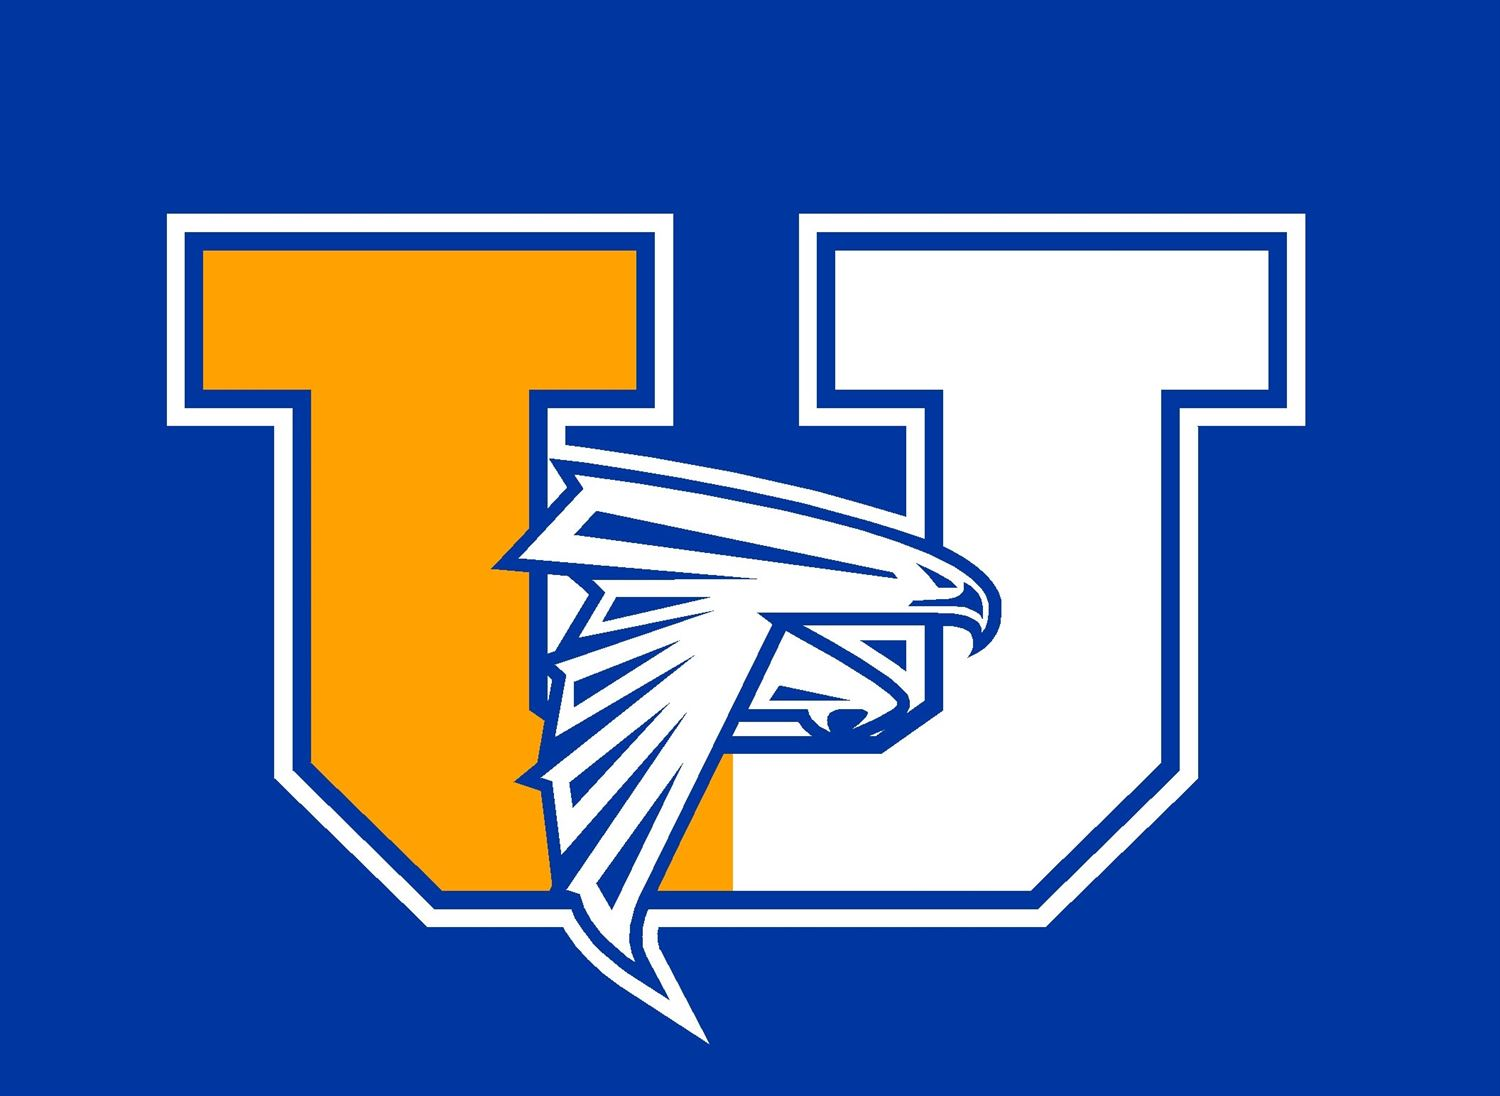 Union High School - Union/Allegheny-Clarion Valley Falcon Knights